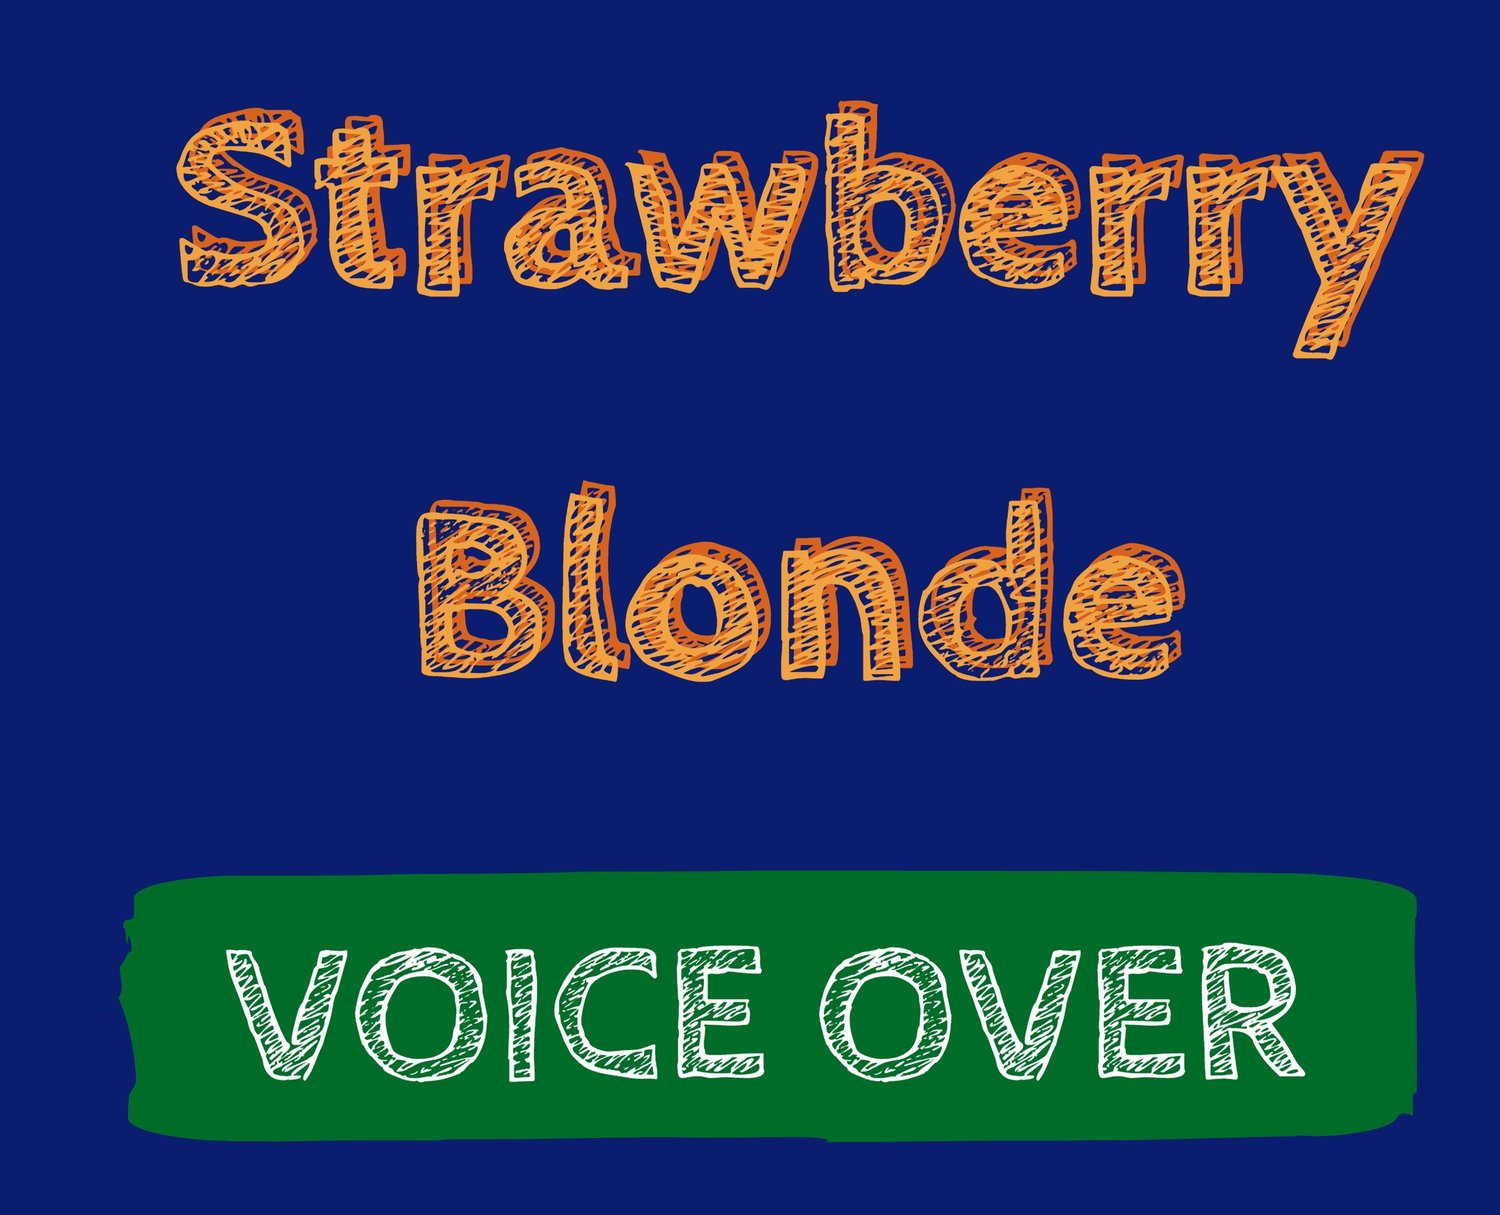 Finley Smith Strawberry Blonde Voiceover